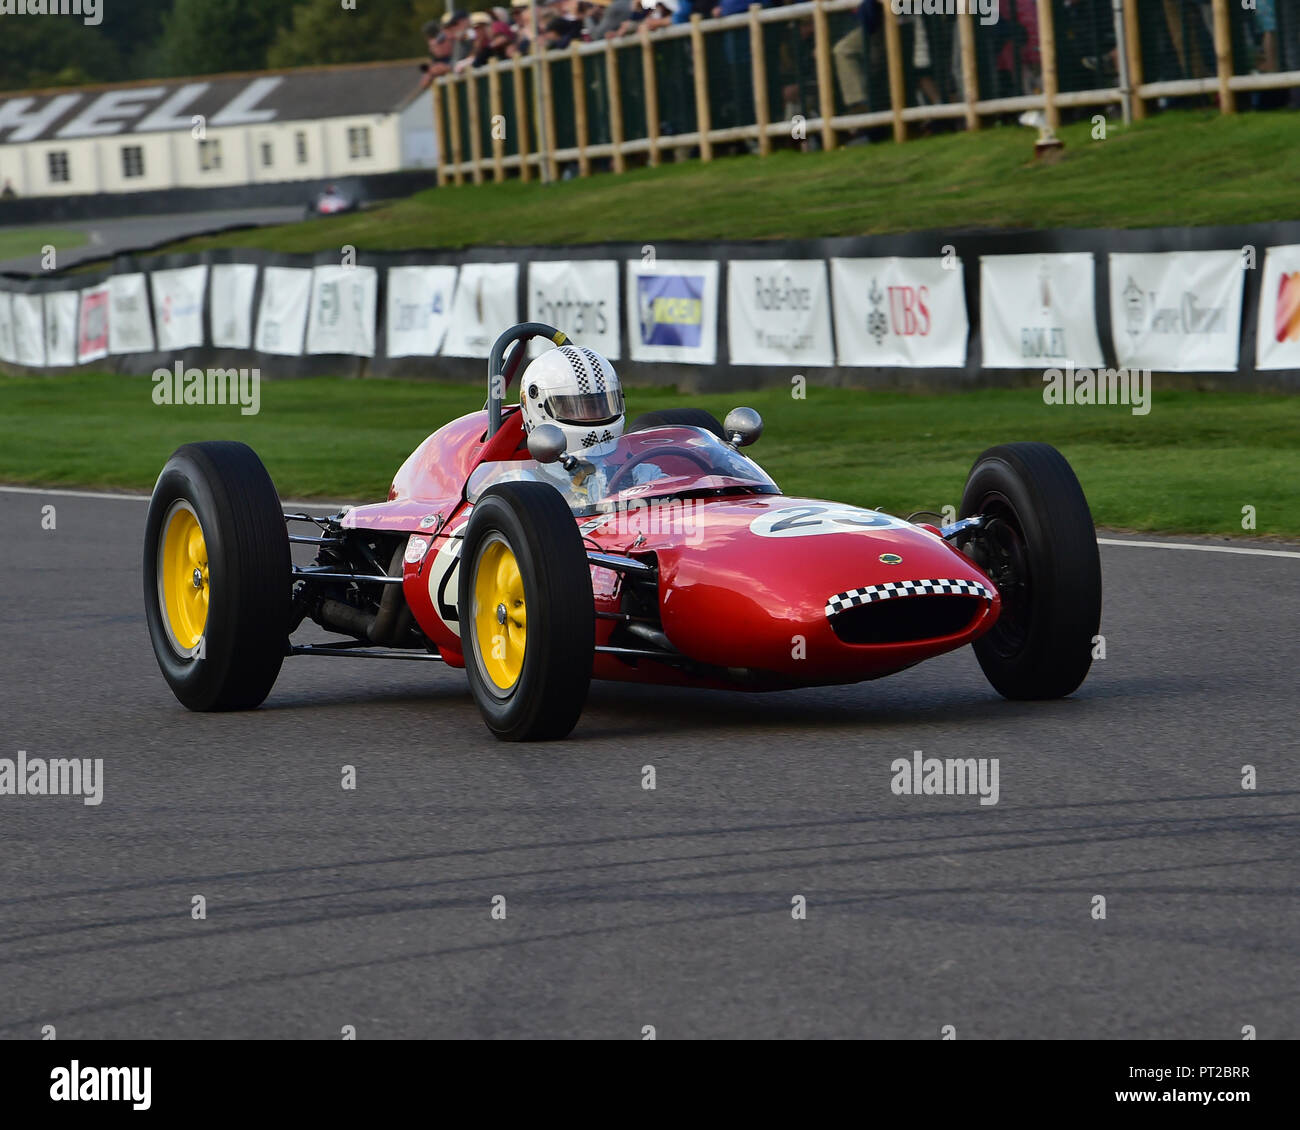 Grand Prix Lotus Climax Stock Photos & Grand Prix Lotus